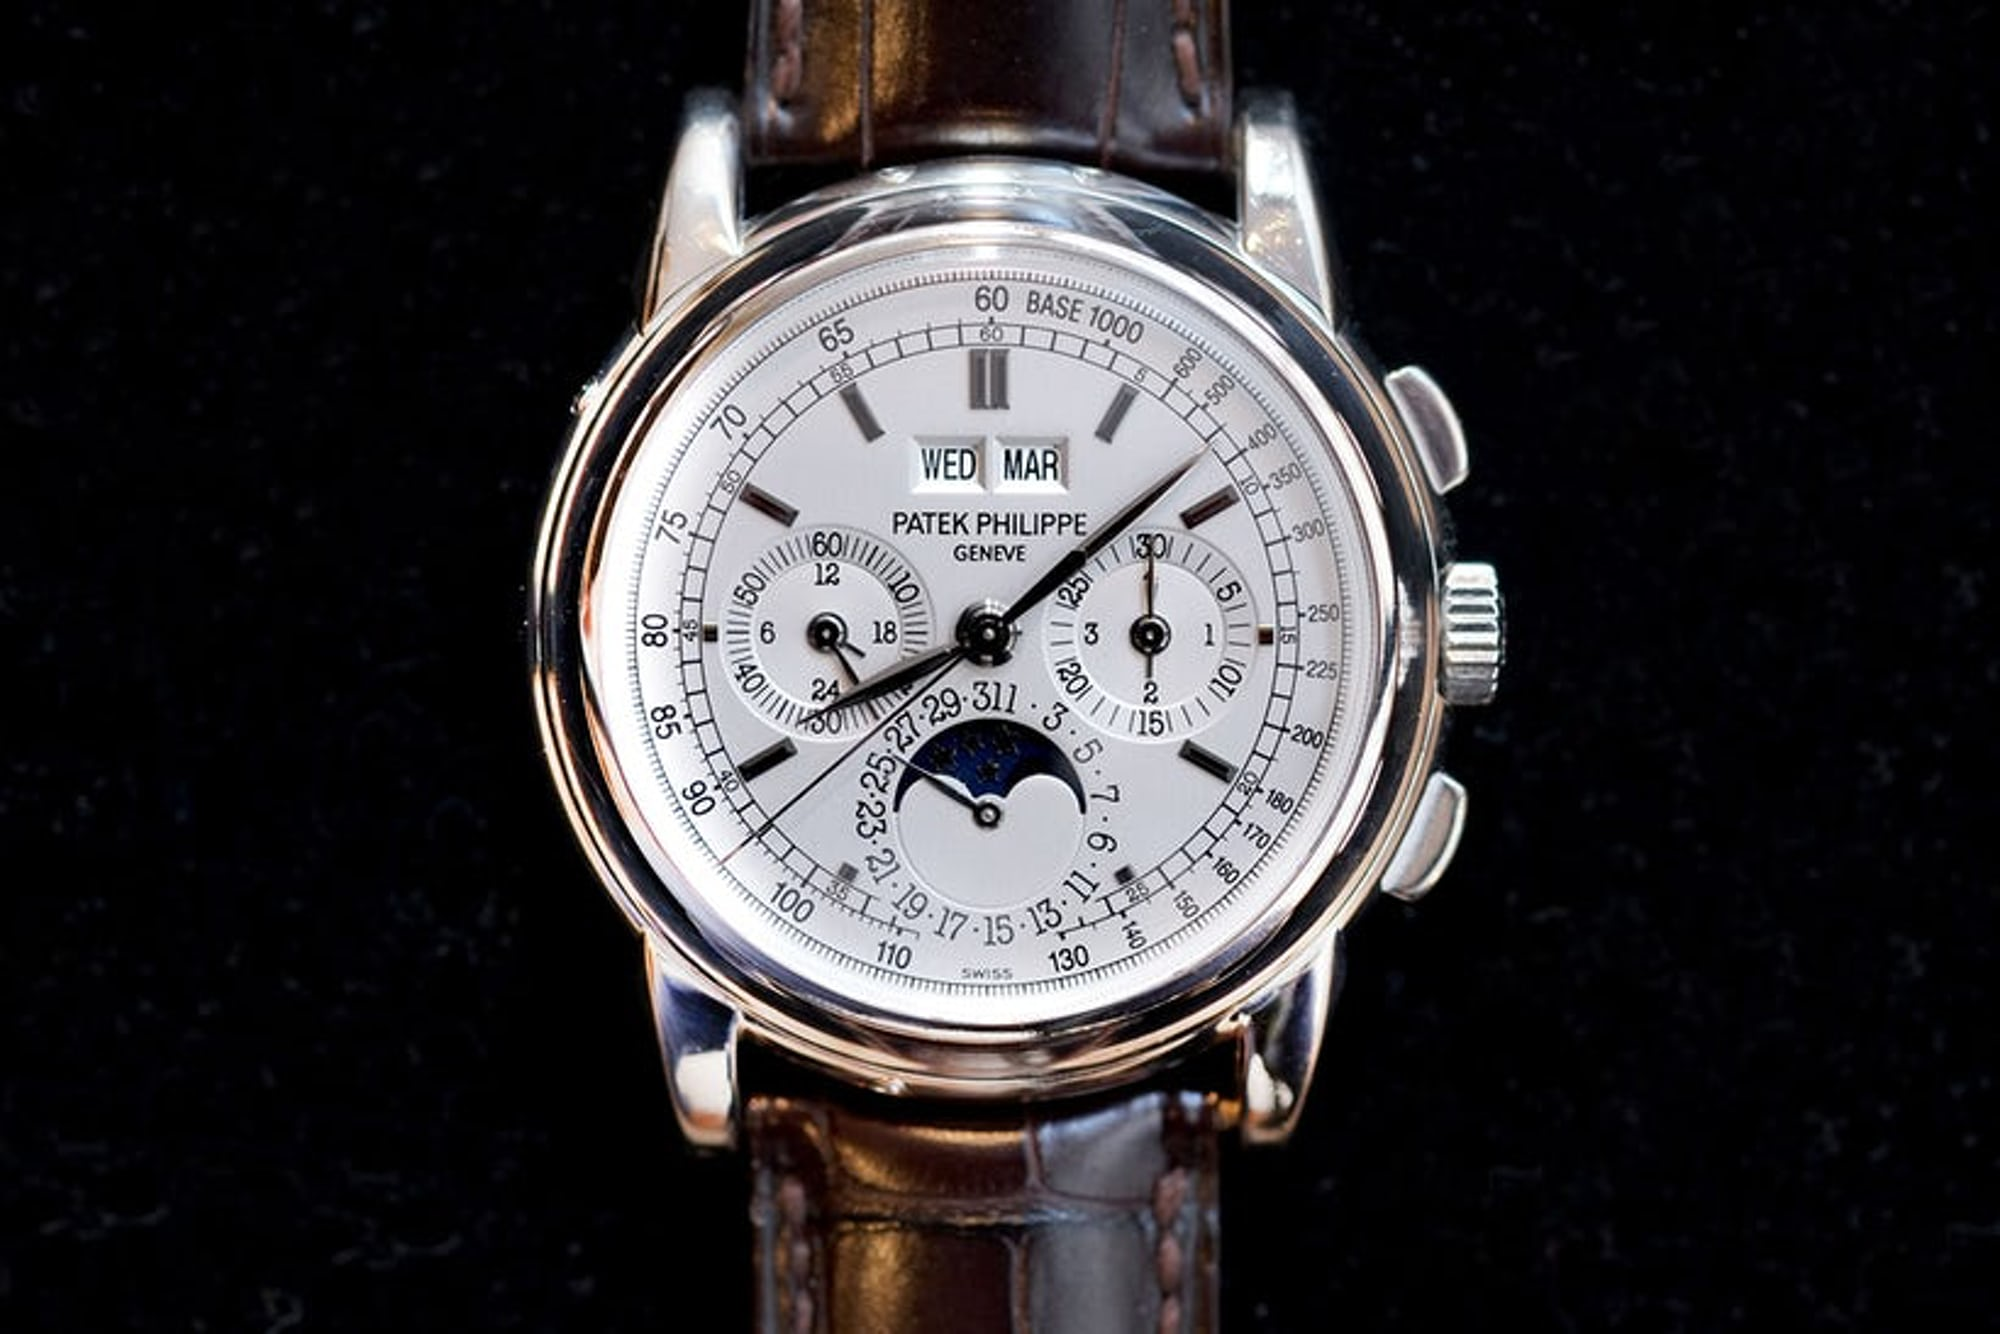 Watch Spotting: Rappers 21 Savage, Offset, And Metro Boomin Mention A Patek Philippe Reference 5790 A Lot (There's Only One Problem) Watch Spotting: Rappers 21 Savage, Offset, And Metro Boomin Mention A Patek Philippe Reference 5790 A Lot (There's Only One Problem) christies 5970 06